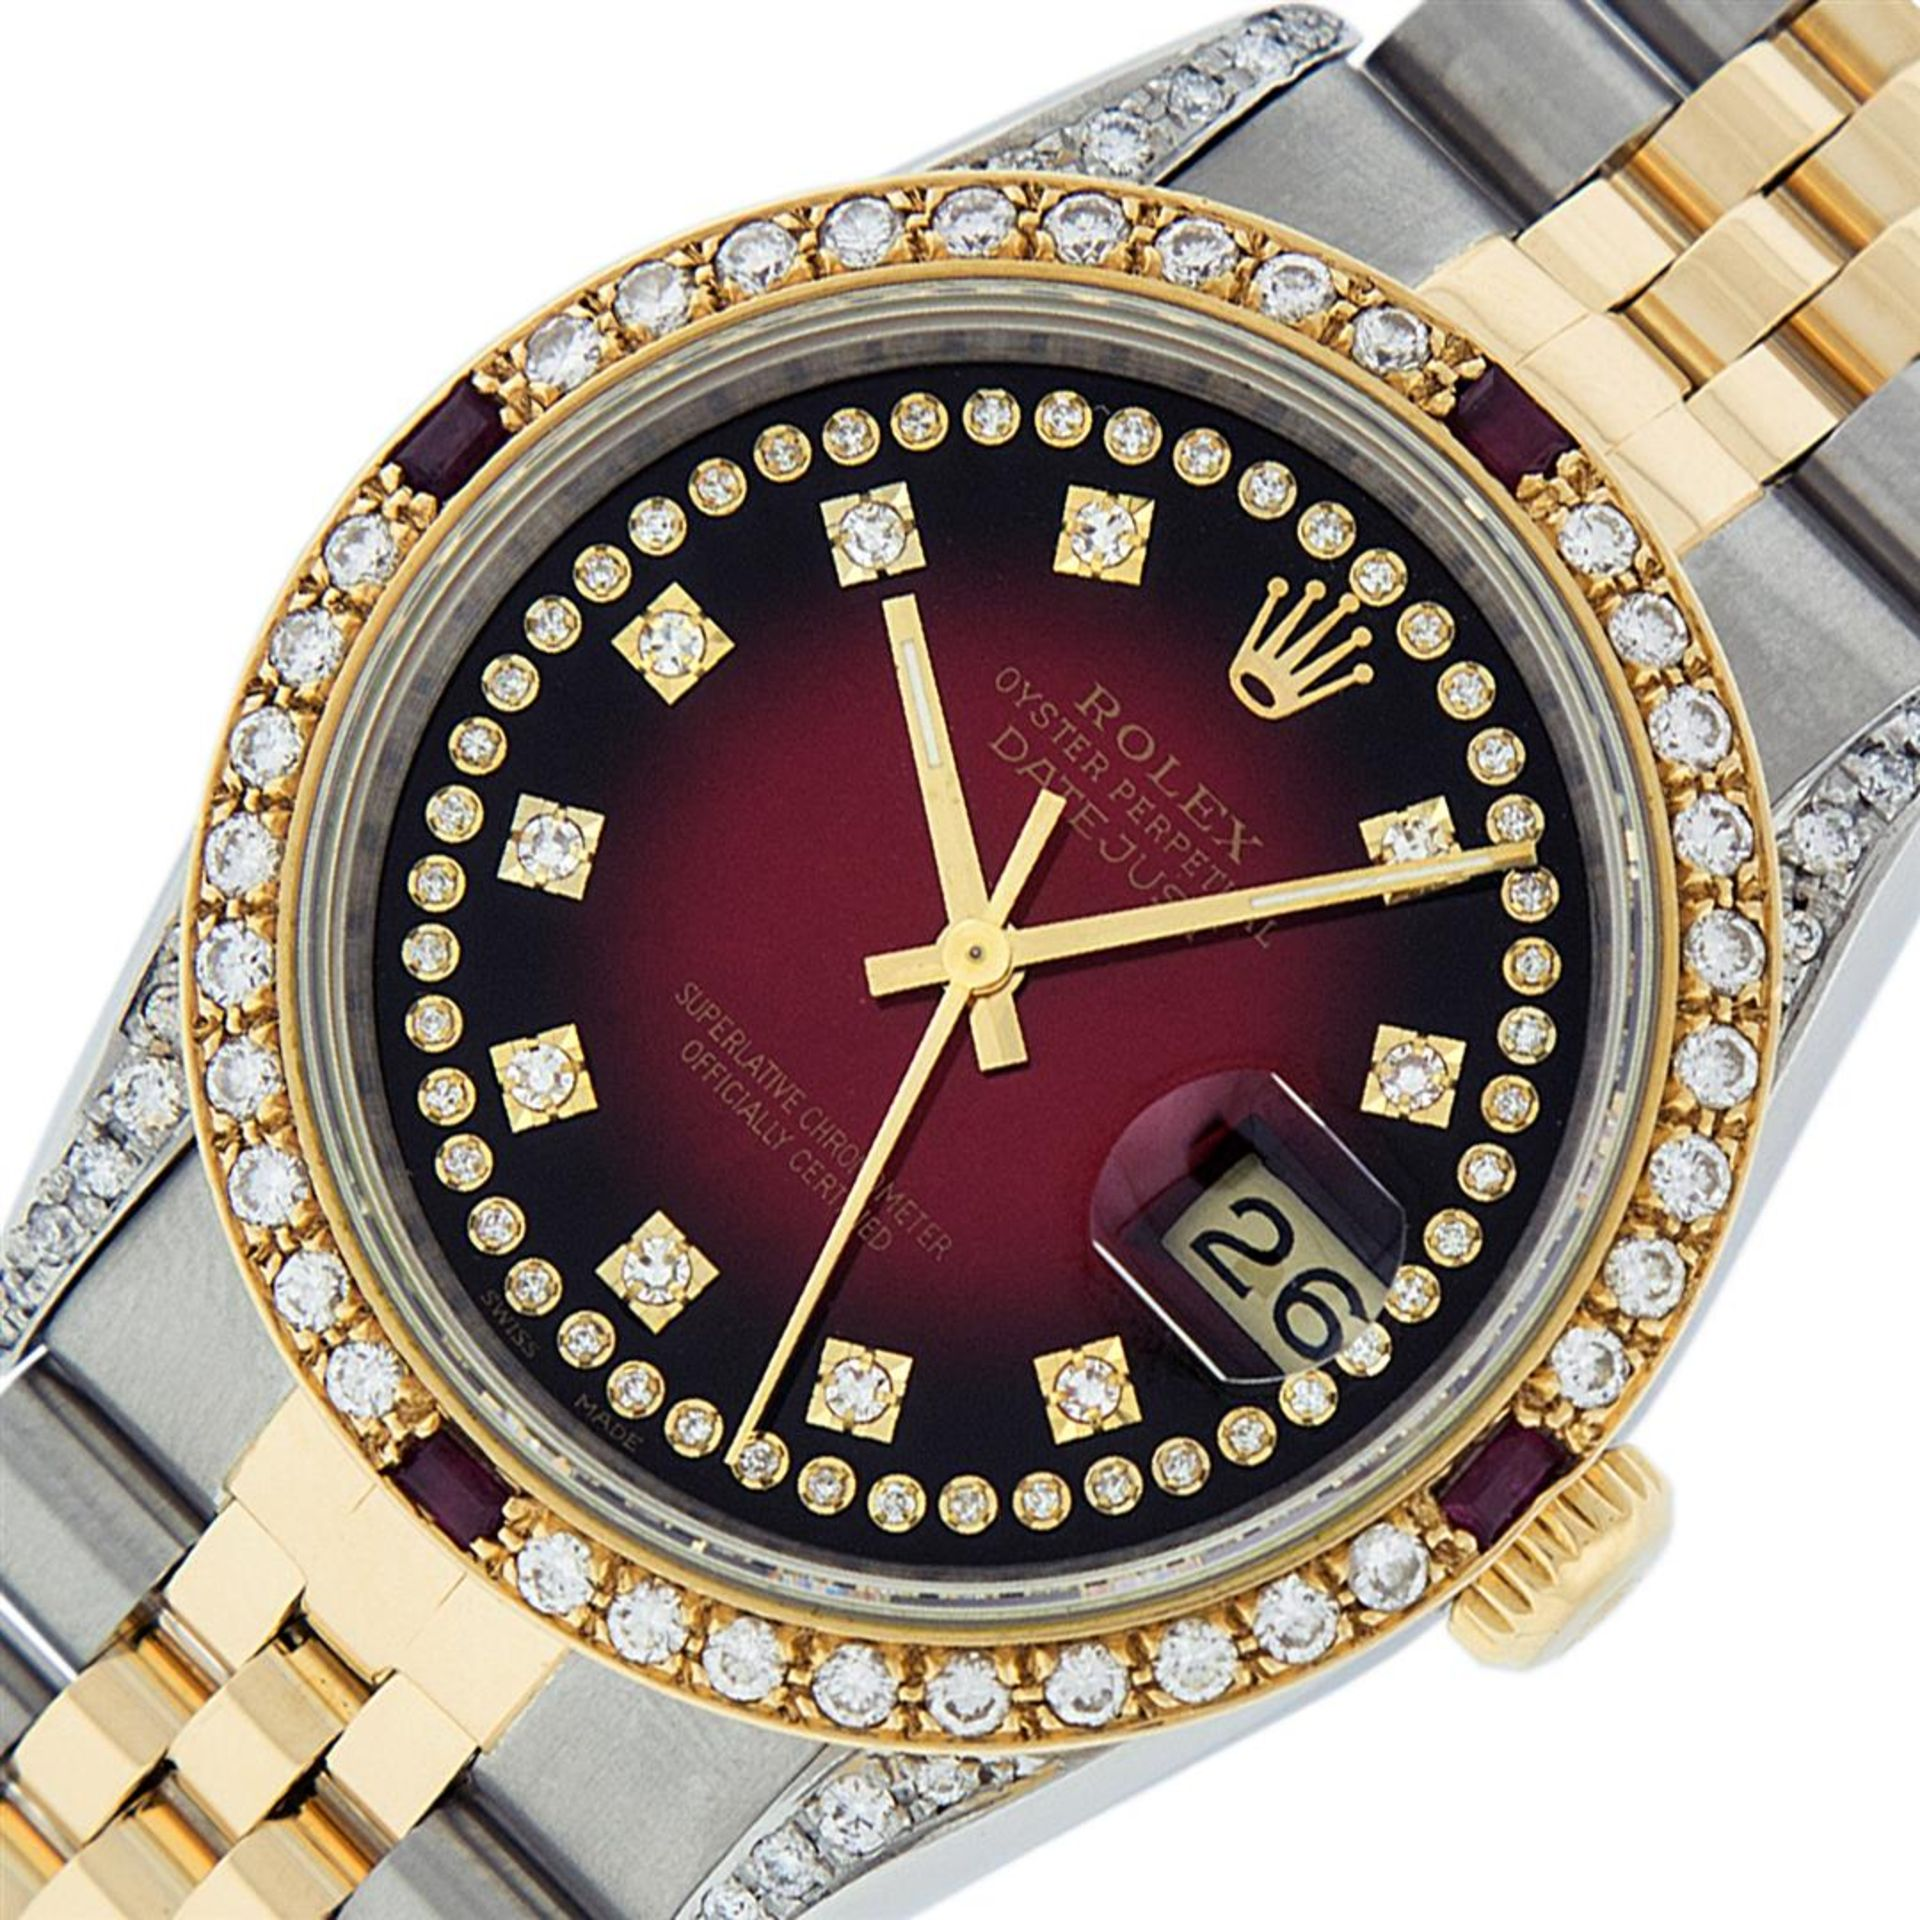 Rolex Mens 2 Tone Lugs Red Vignette Diamond String & Ruby Datejust Wristwatch - Image 2 of 9